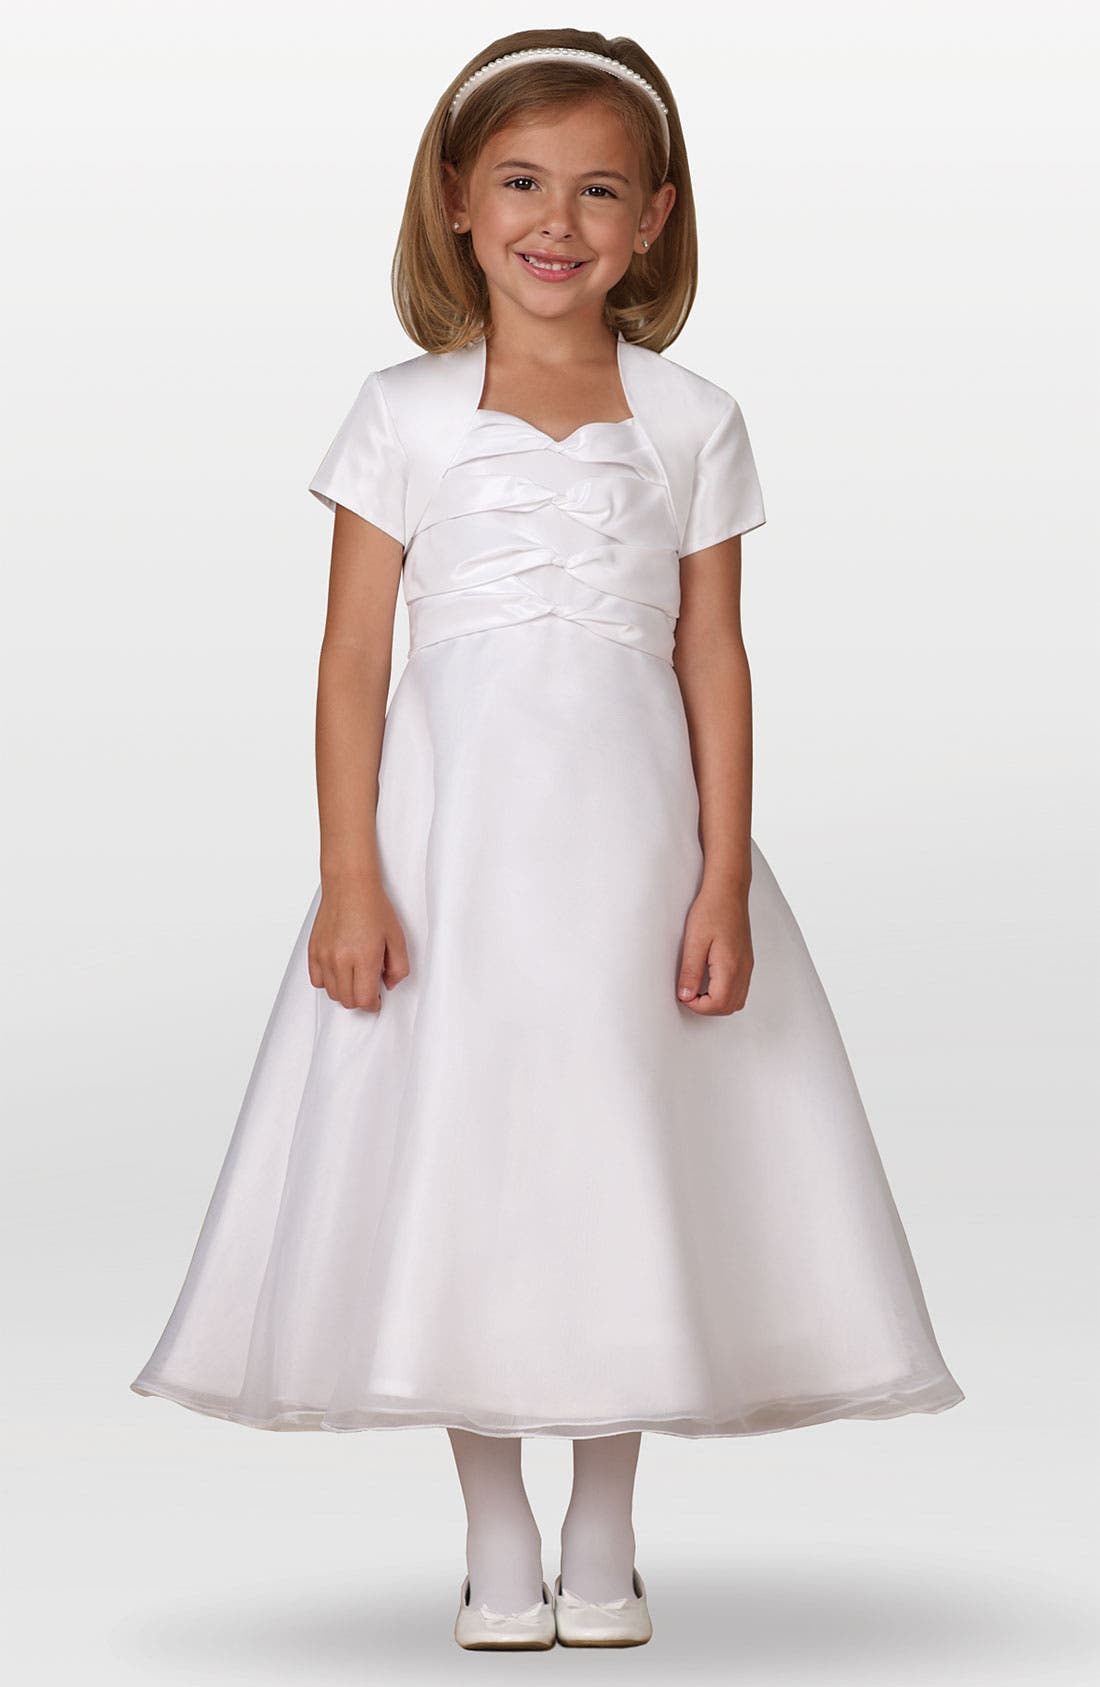 Alternate Image 1 Selected - Joan Calabrese for Mon Cheri Taffeta Dress & Bolero (Little Girls & Big Girls)